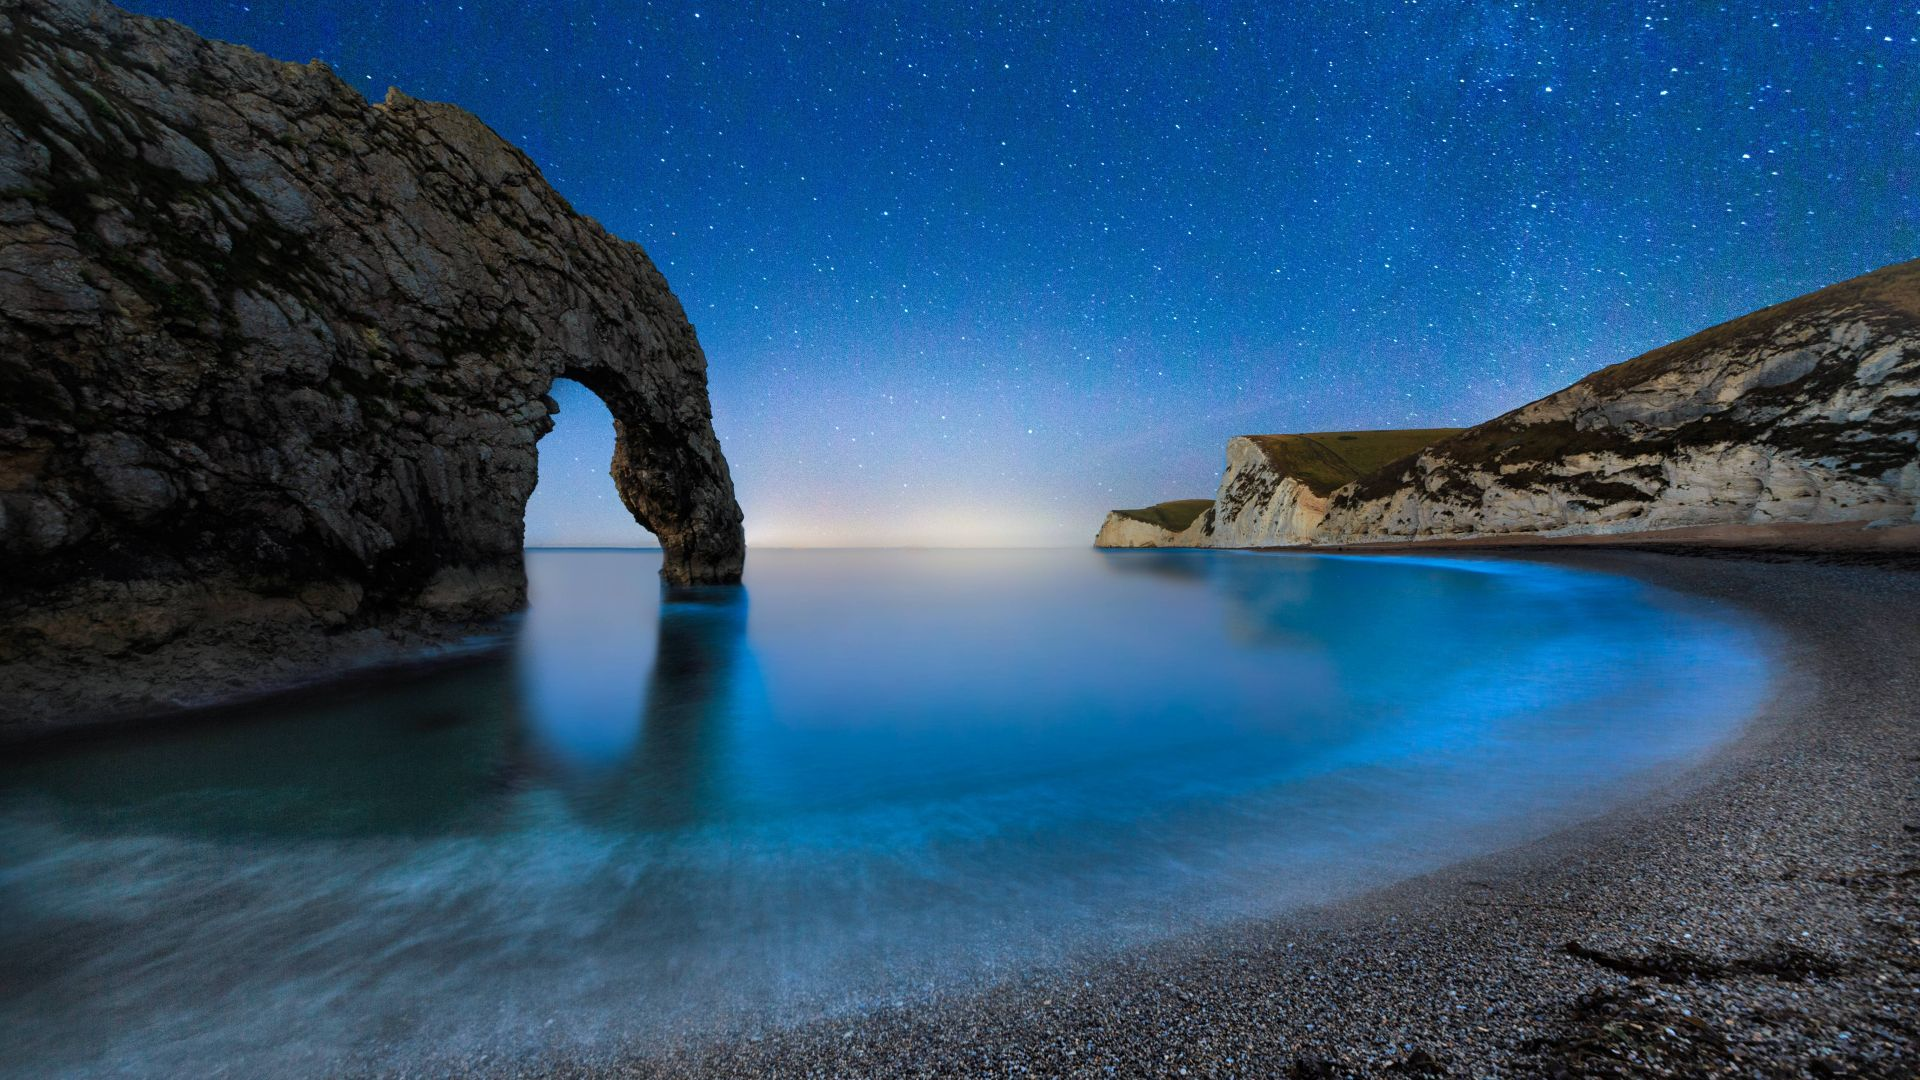 Дердл Дор, 5k, 4k, море, пляж, ночь, Англия, Durdle Door, 5k, 4k wallpaper, beach, night, stars, sea, England (horizontal)